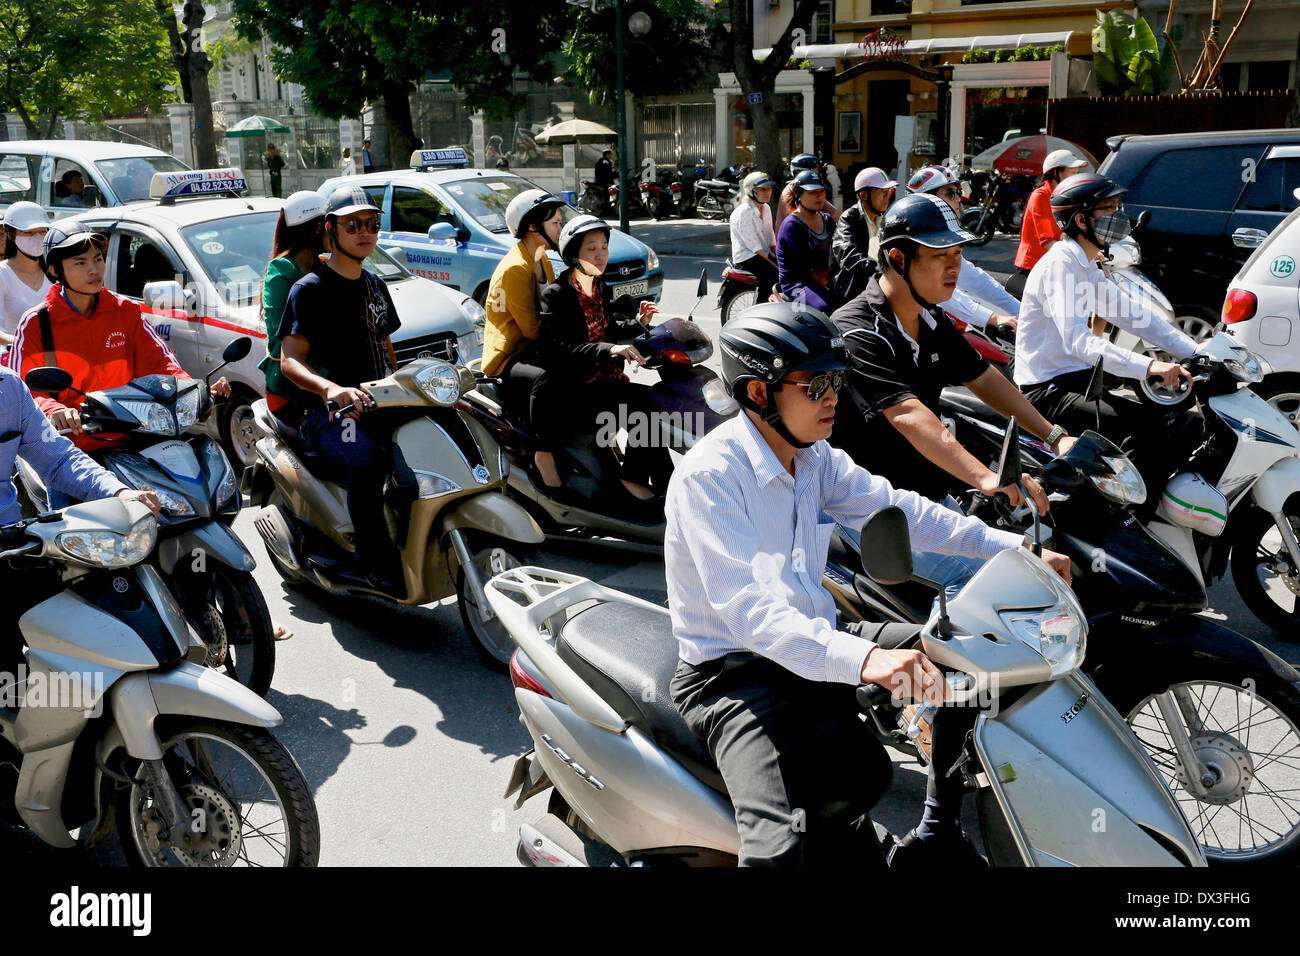 Motorbikes and taxis in a traffic jam in Hanoi. Hanoi, Vietnam, Southeast Asia - Stock Image